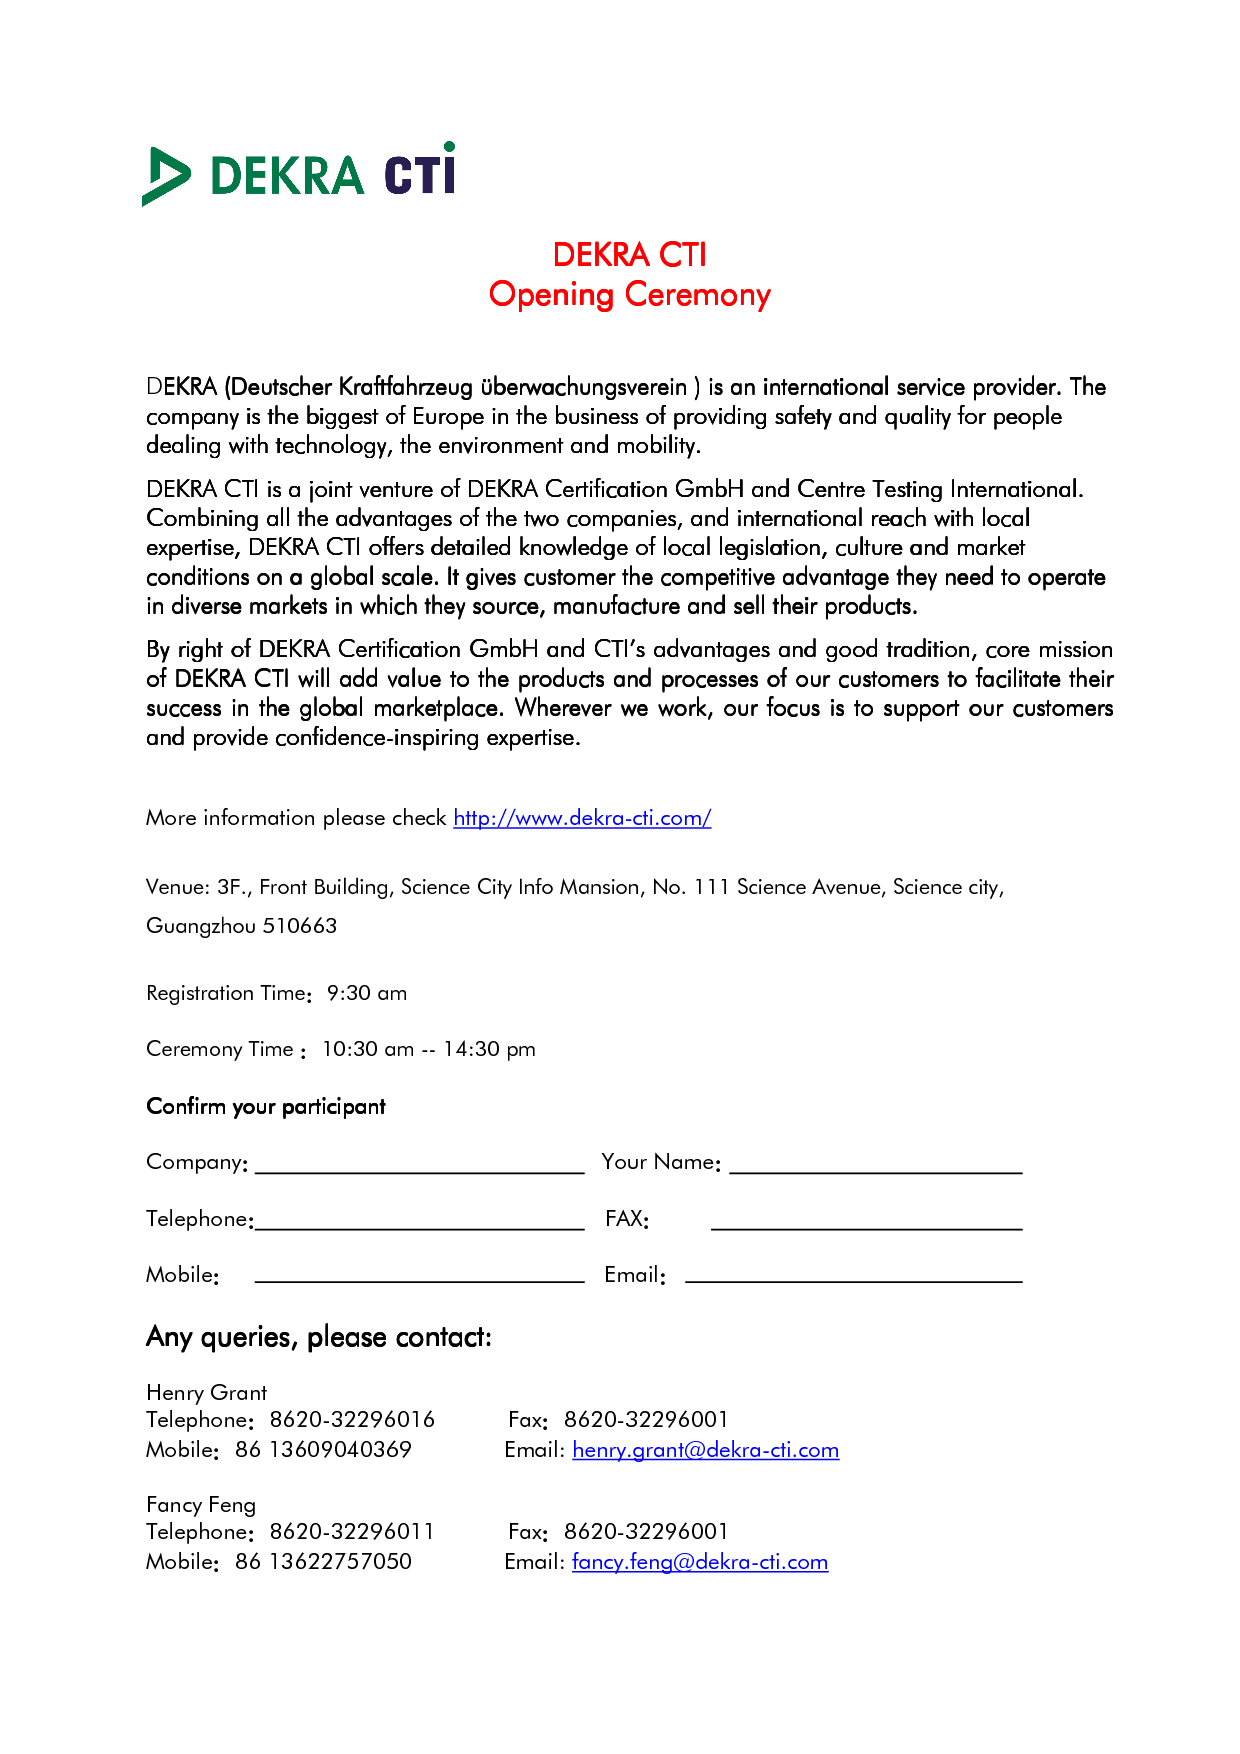 Grand Opening Invitation Letter